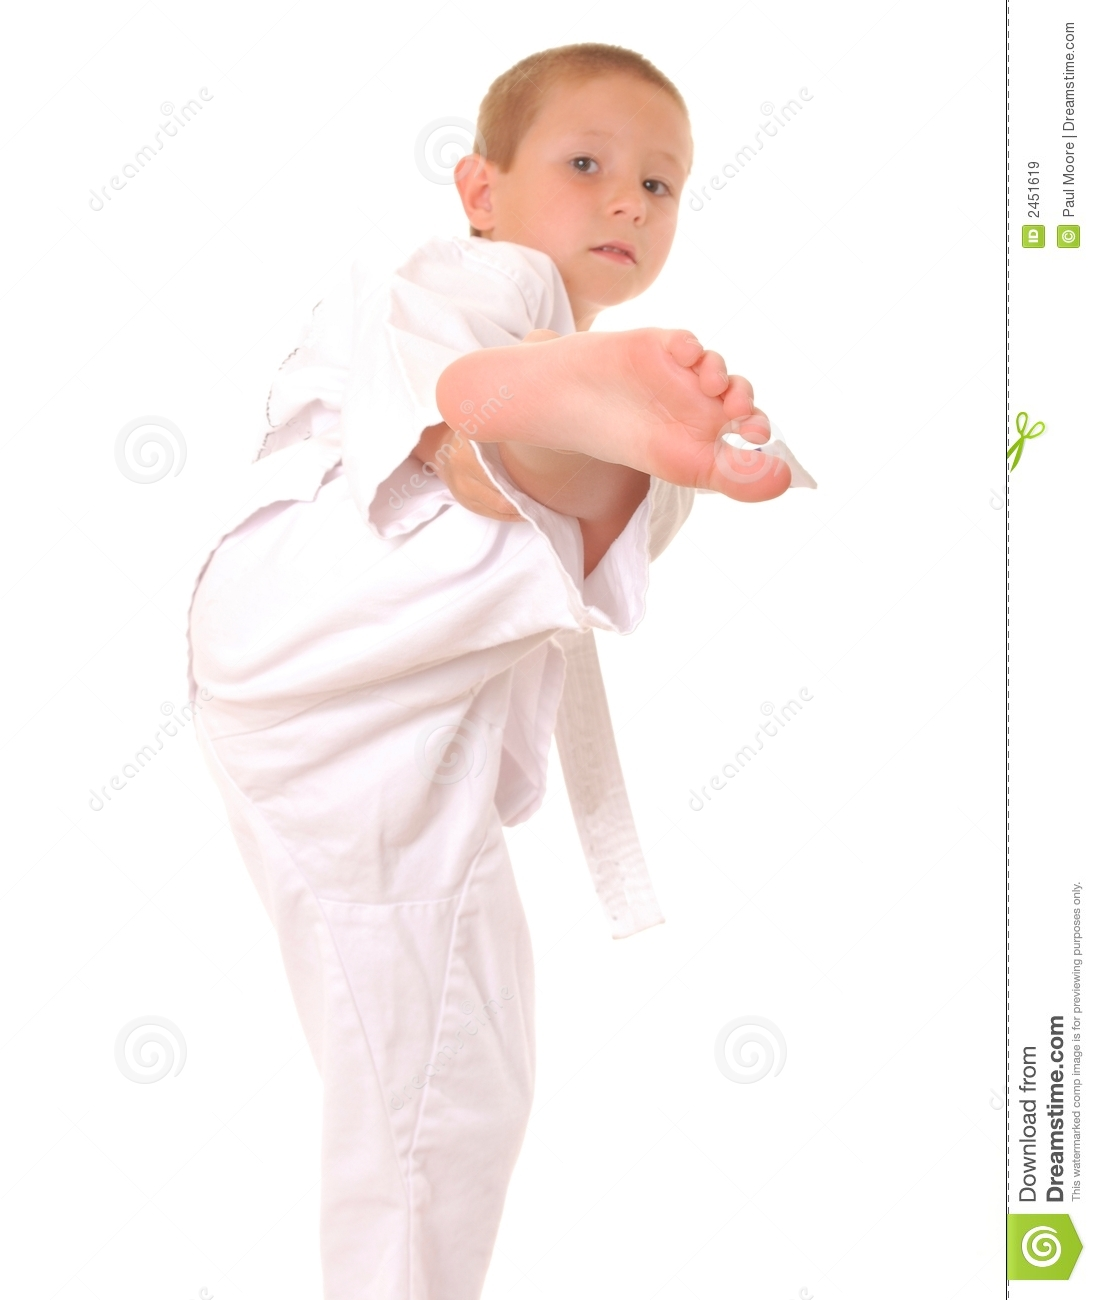 image Young boys playing doctor stories gay first